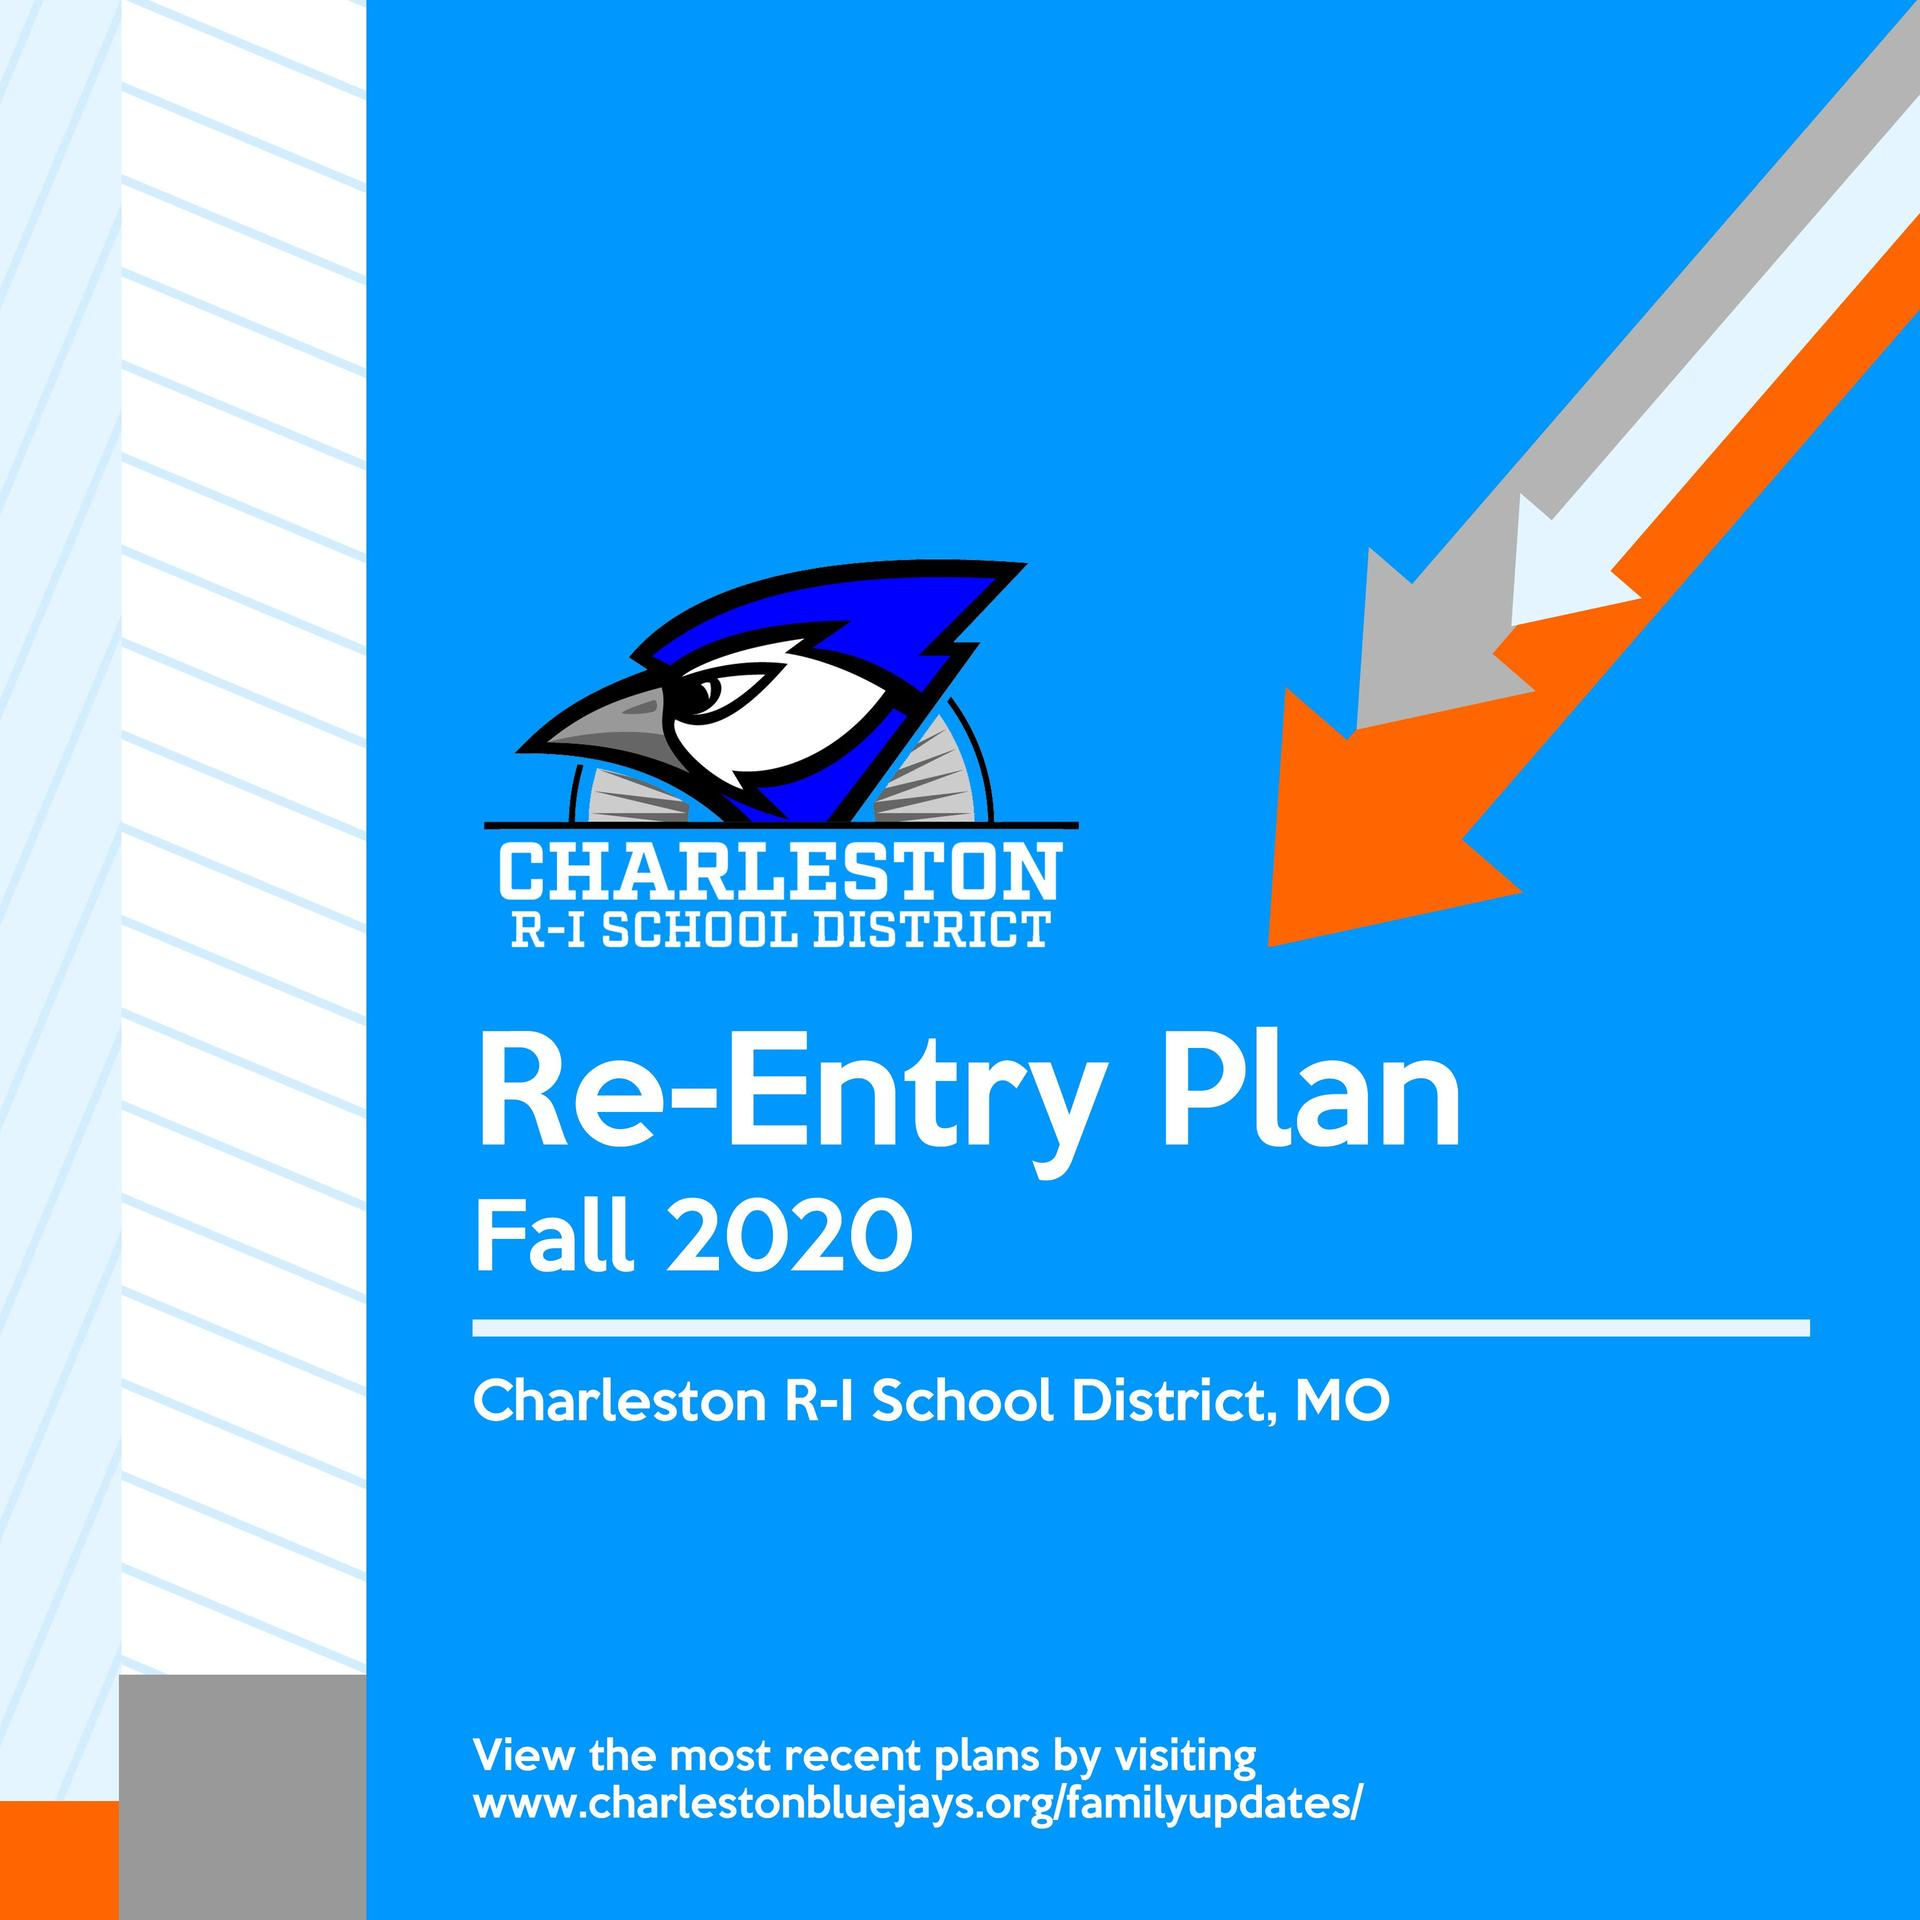 Re-Entry Plan graphic